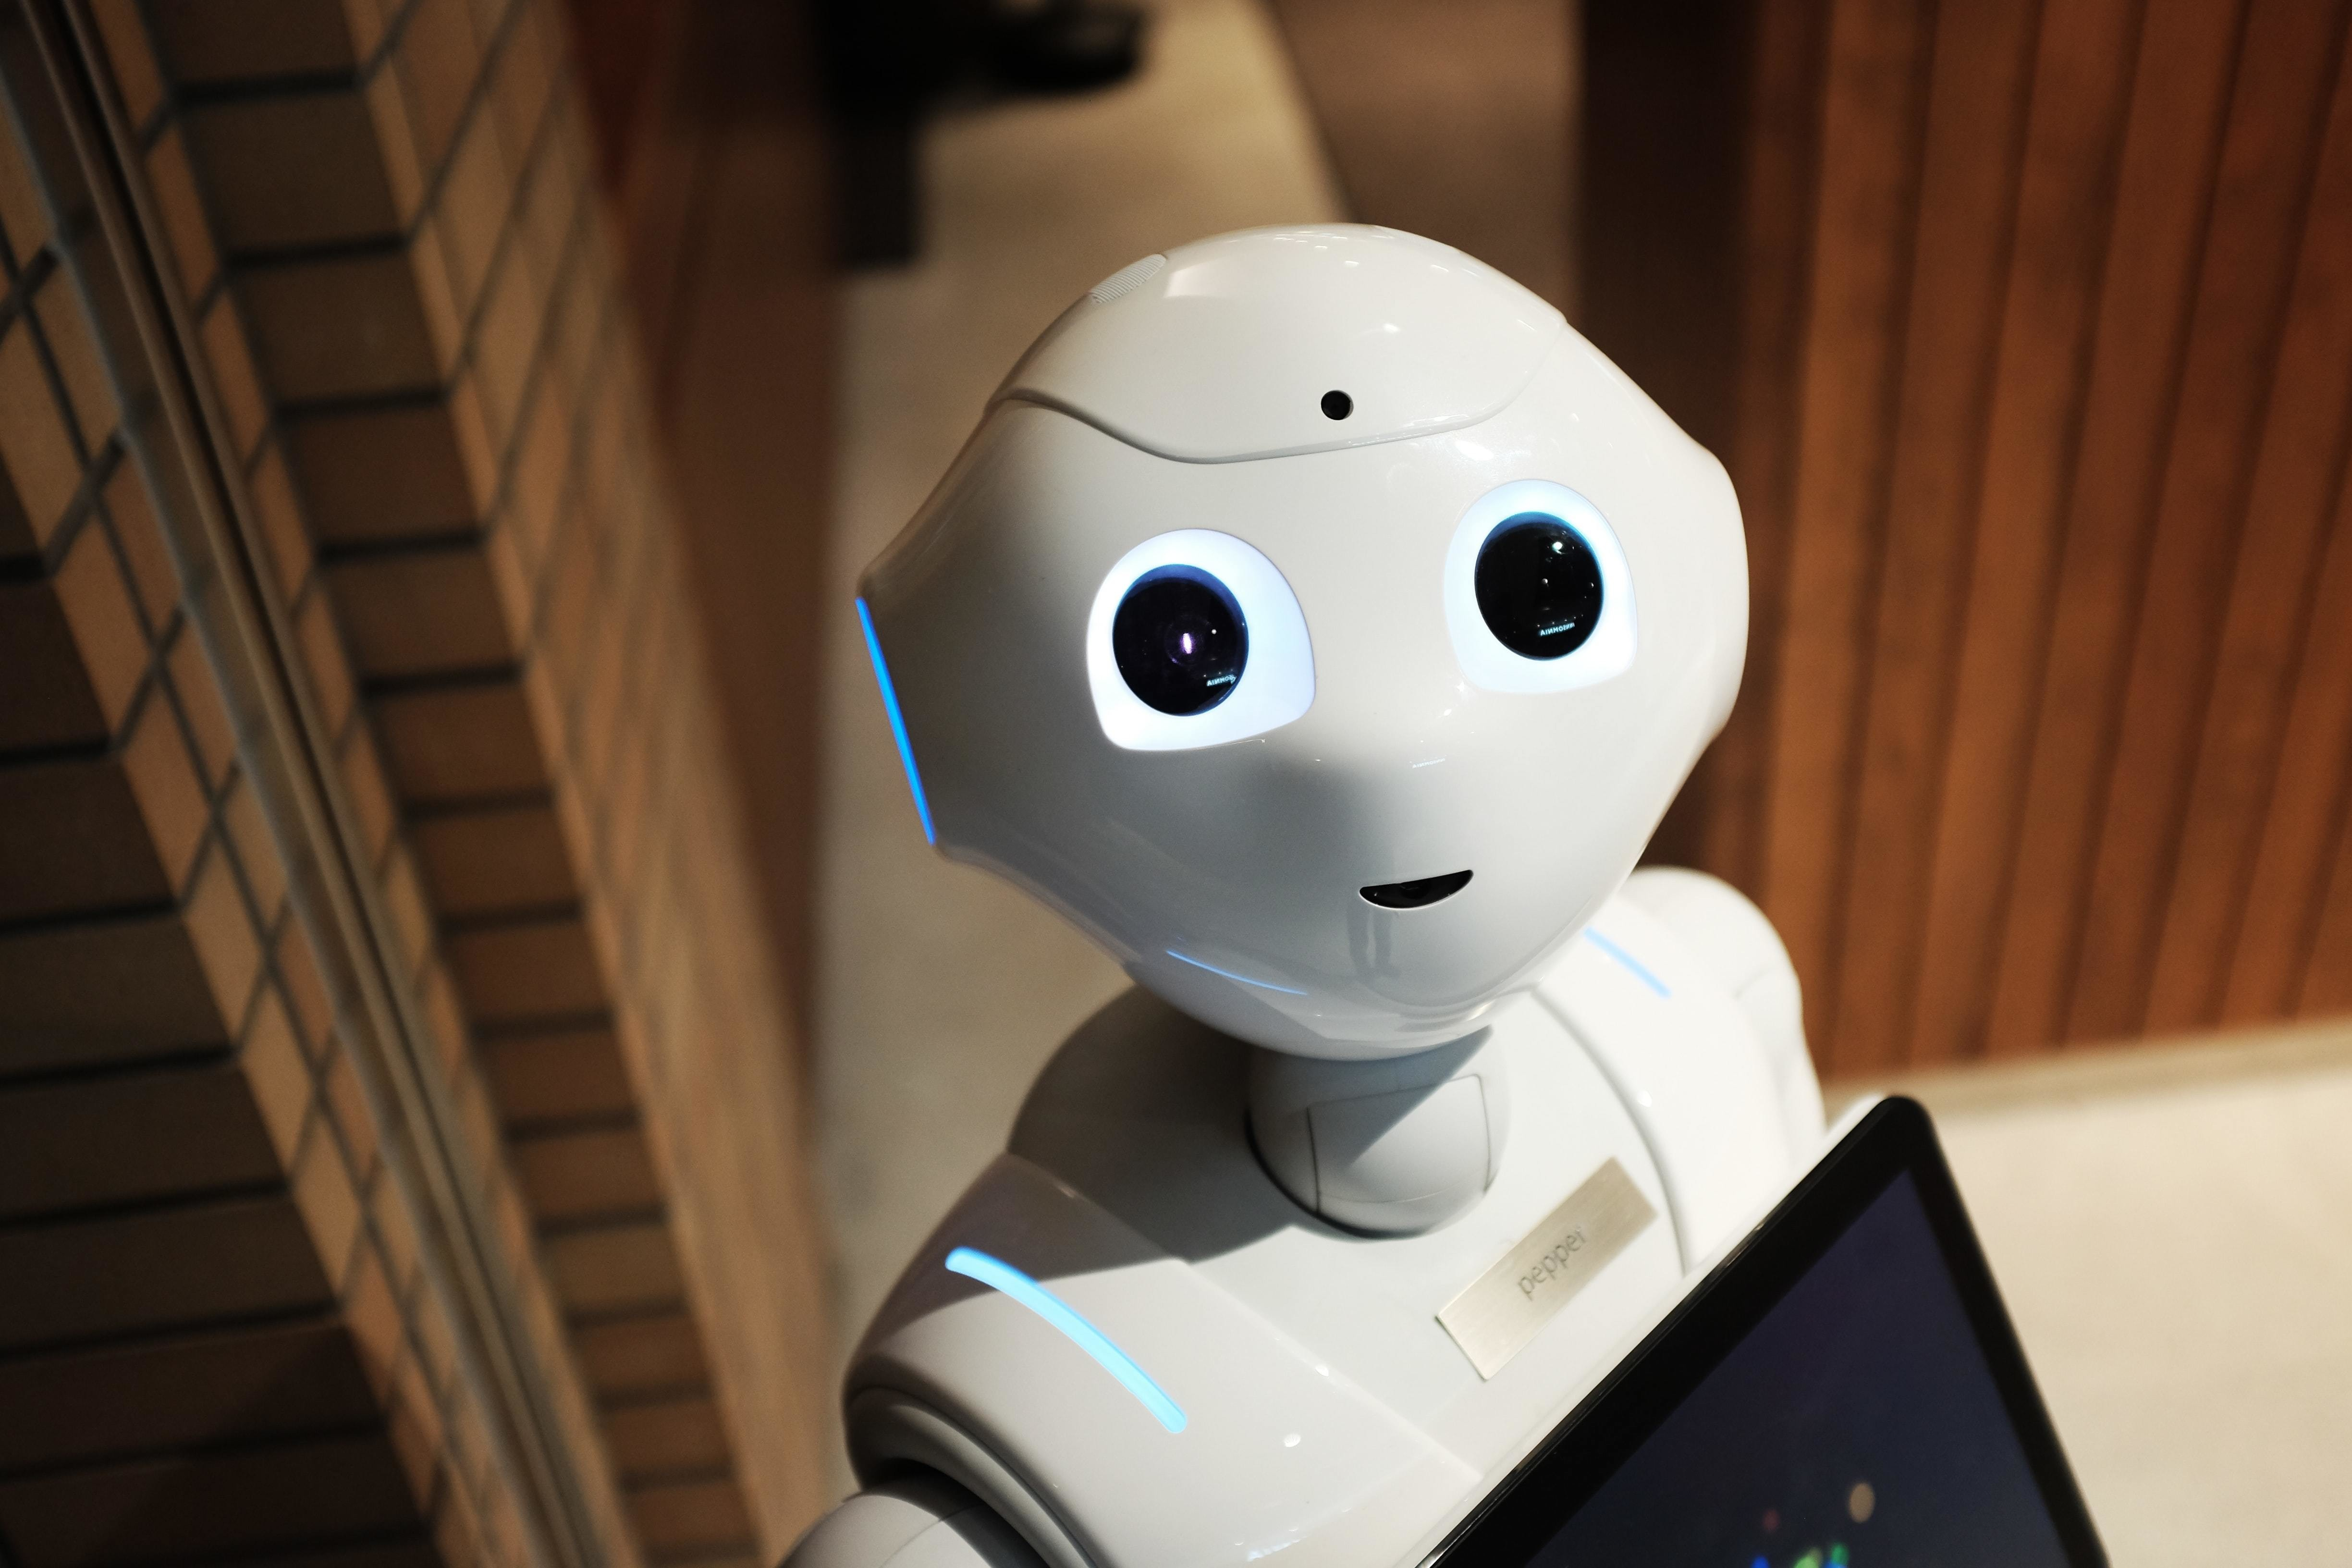 There are many ways that artificial intelligence, such as this robot, can help integrate greater emotional support into the workplace